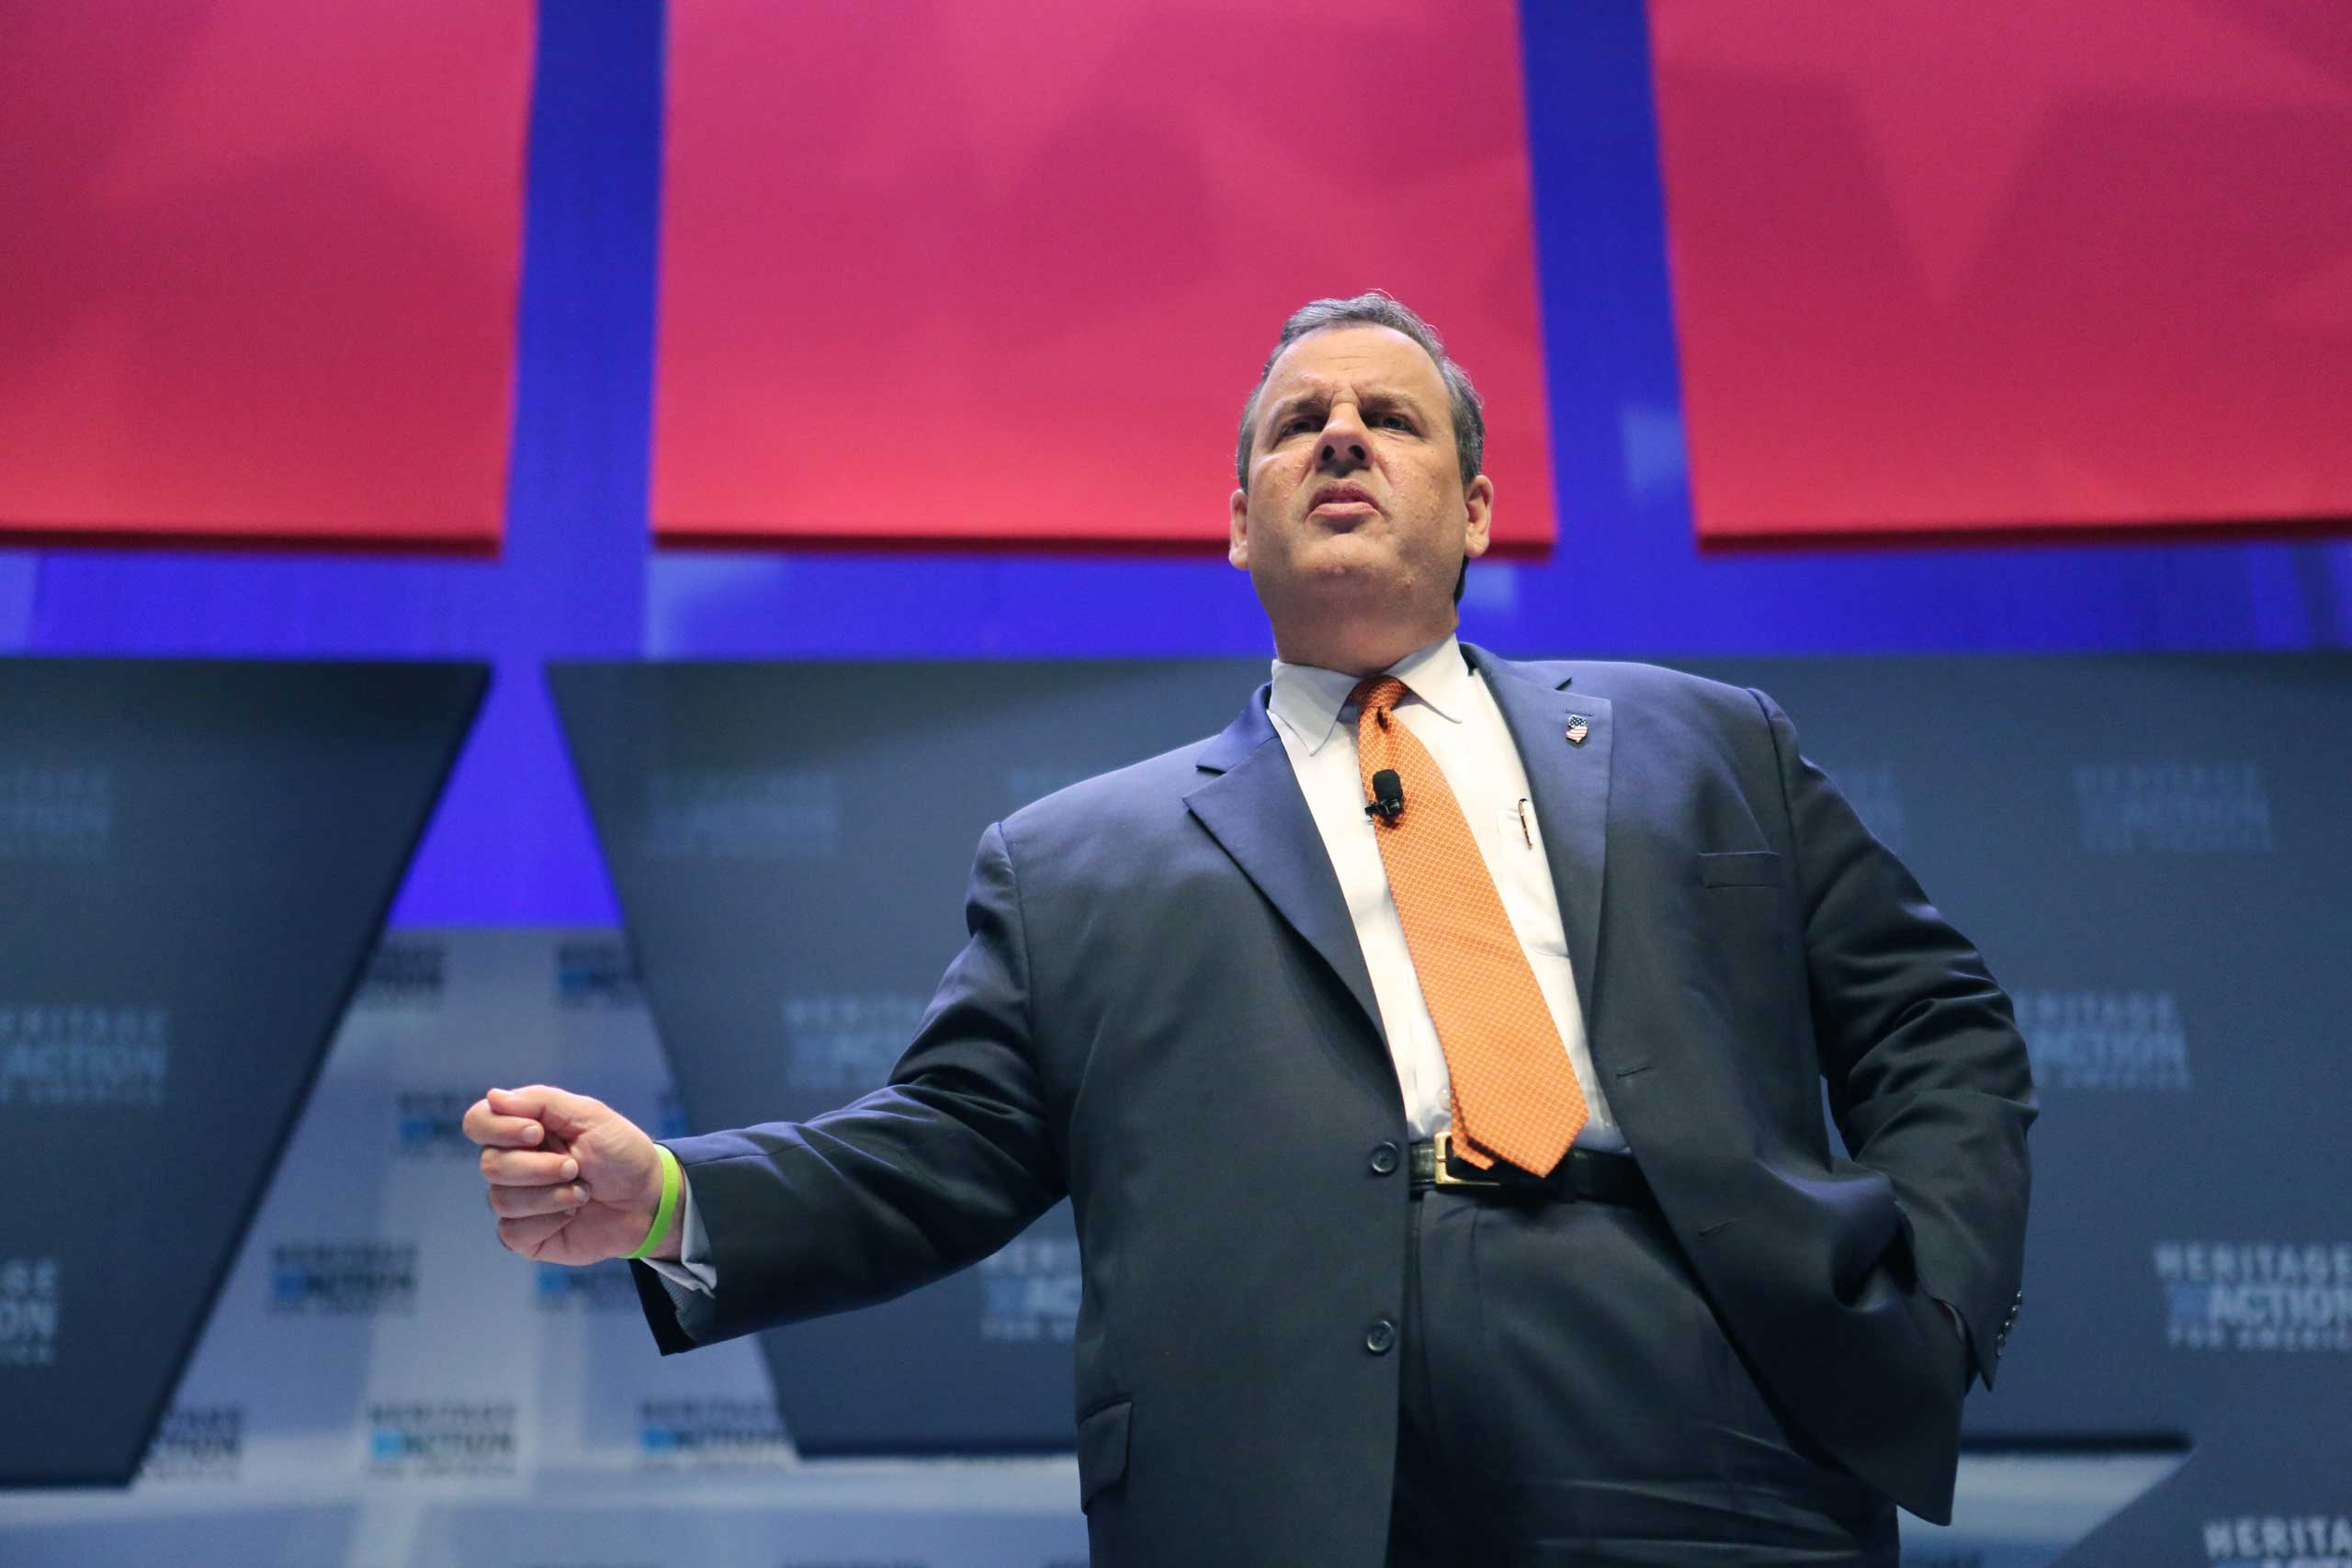 Republican presidential candidate Gov. Chris Christie speaks at the Heritage Foundation Take Back America candidate forum in Greenville, S.C., on Sept. 18, 2015.